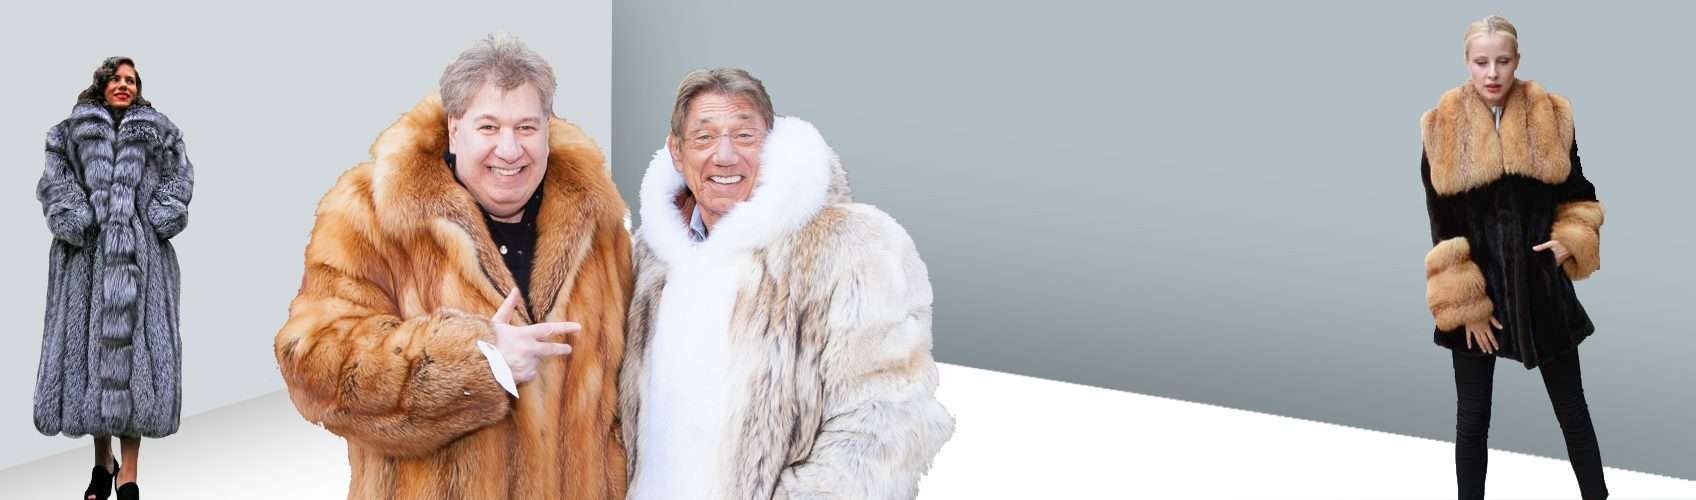 Coyote Coat worn by Joe Namath